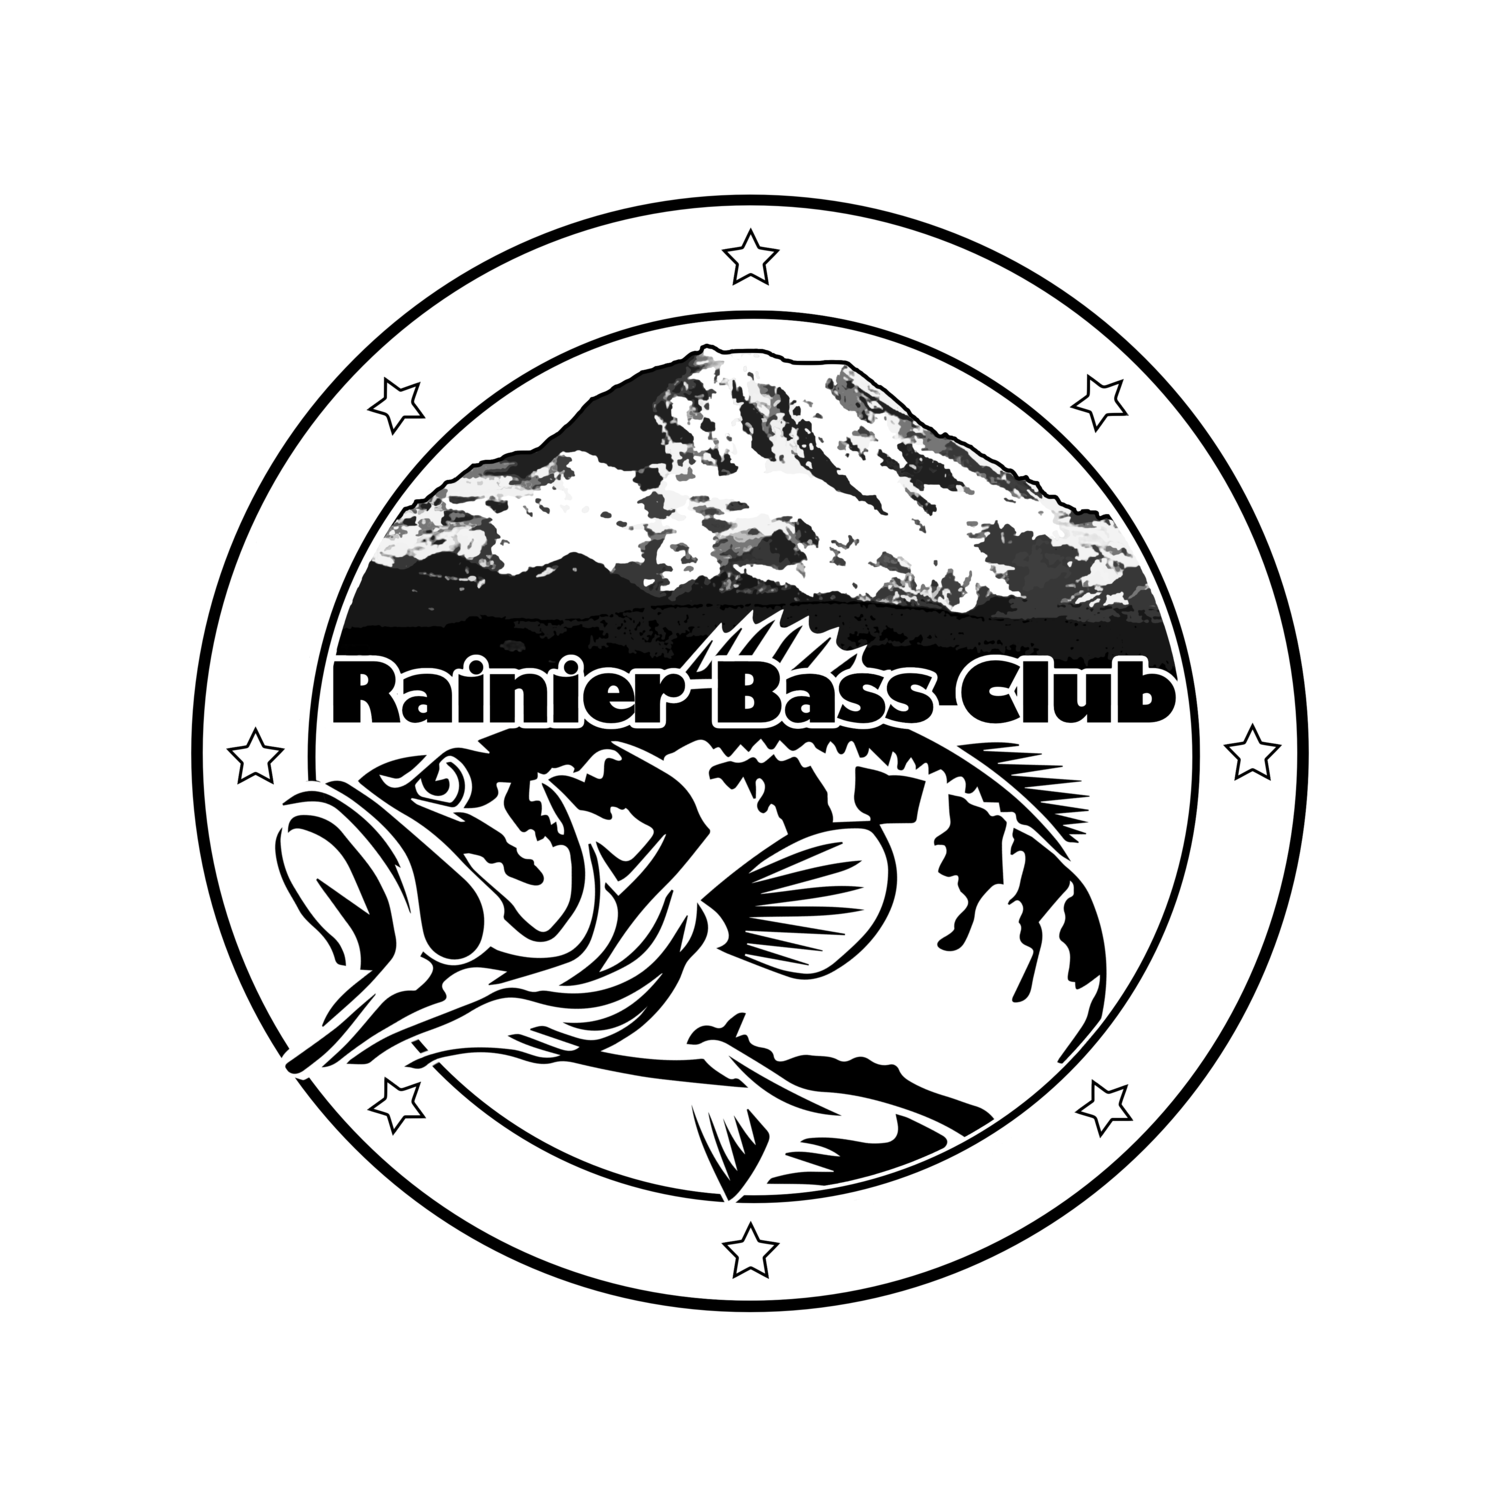 Rainier Bass Club